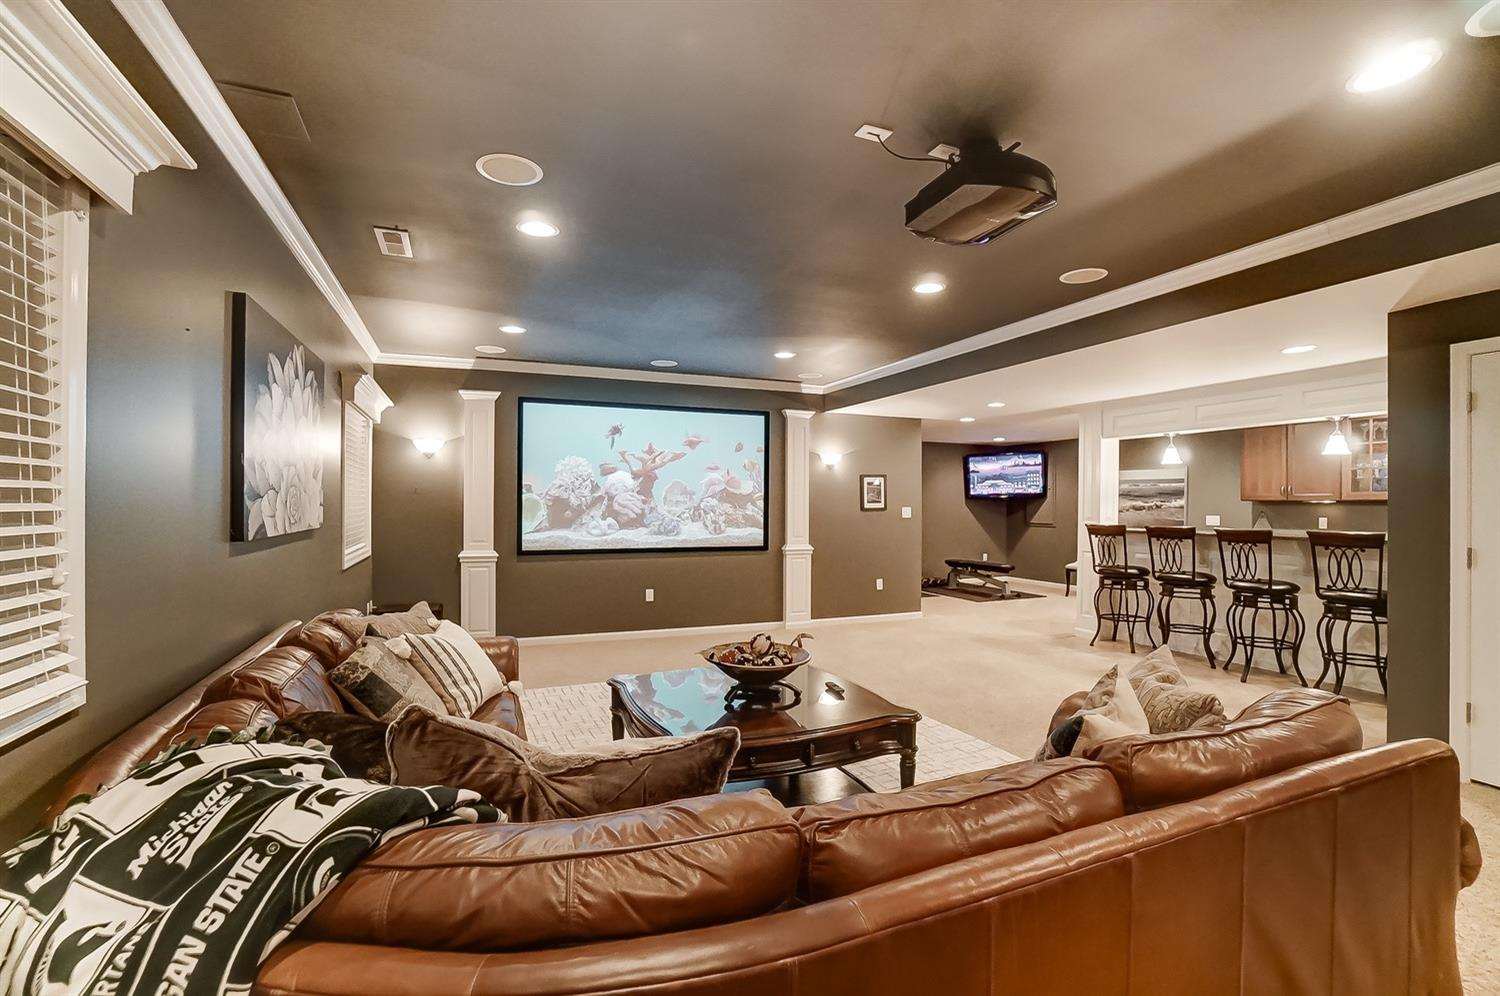 Theater screen stays with the house; projector is negotiable.